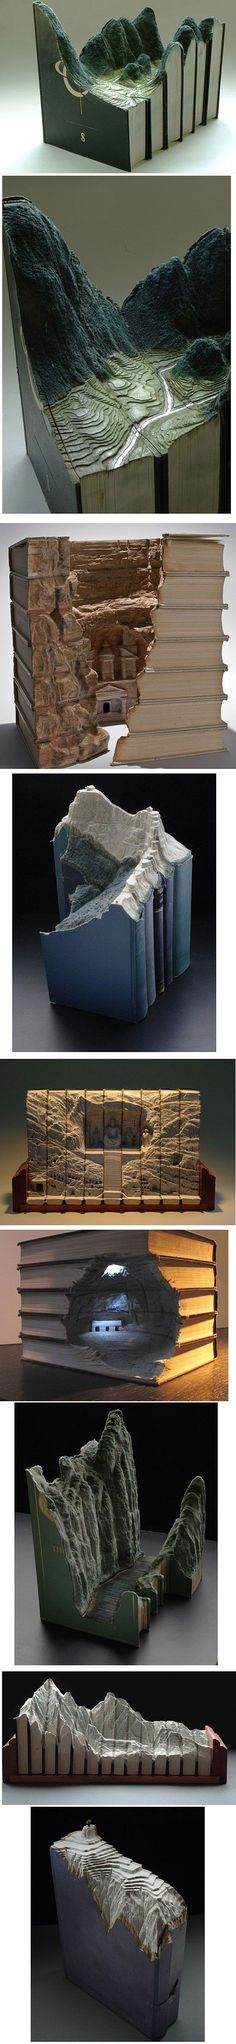 Book carving art Jason my book reading son would love this topographical book collection ! Just amazing.